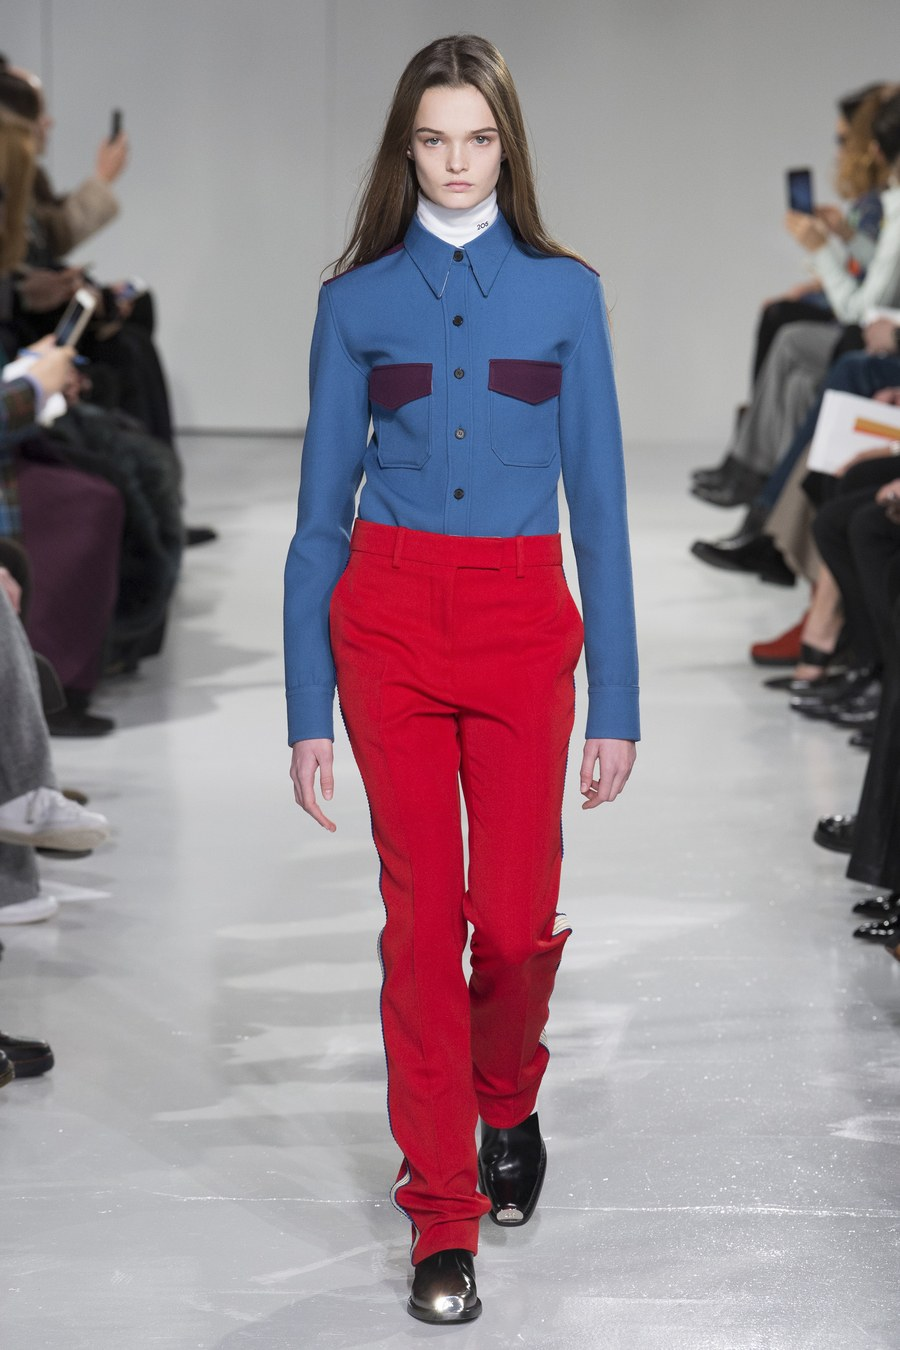 4285dac11a293 The first outfit of the first Calvin Klein collection that Raf Simons  showed back in February last year. Photo: Yannis Vlamos/indigital.tv